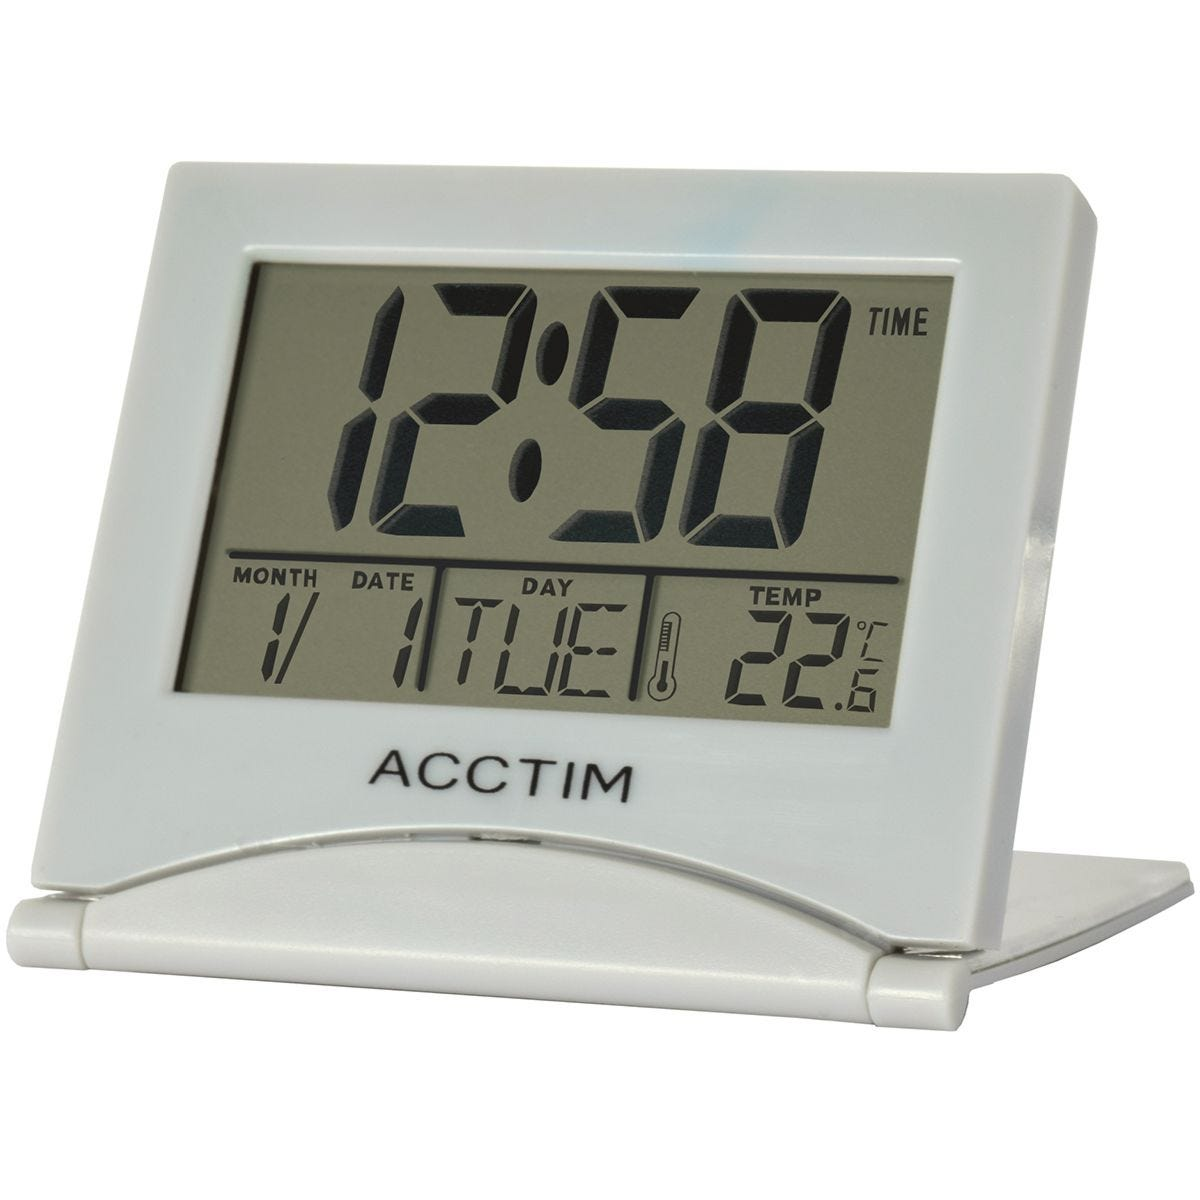 Acctim 'Mini Flip II' LCD Alarm Clock - Grey